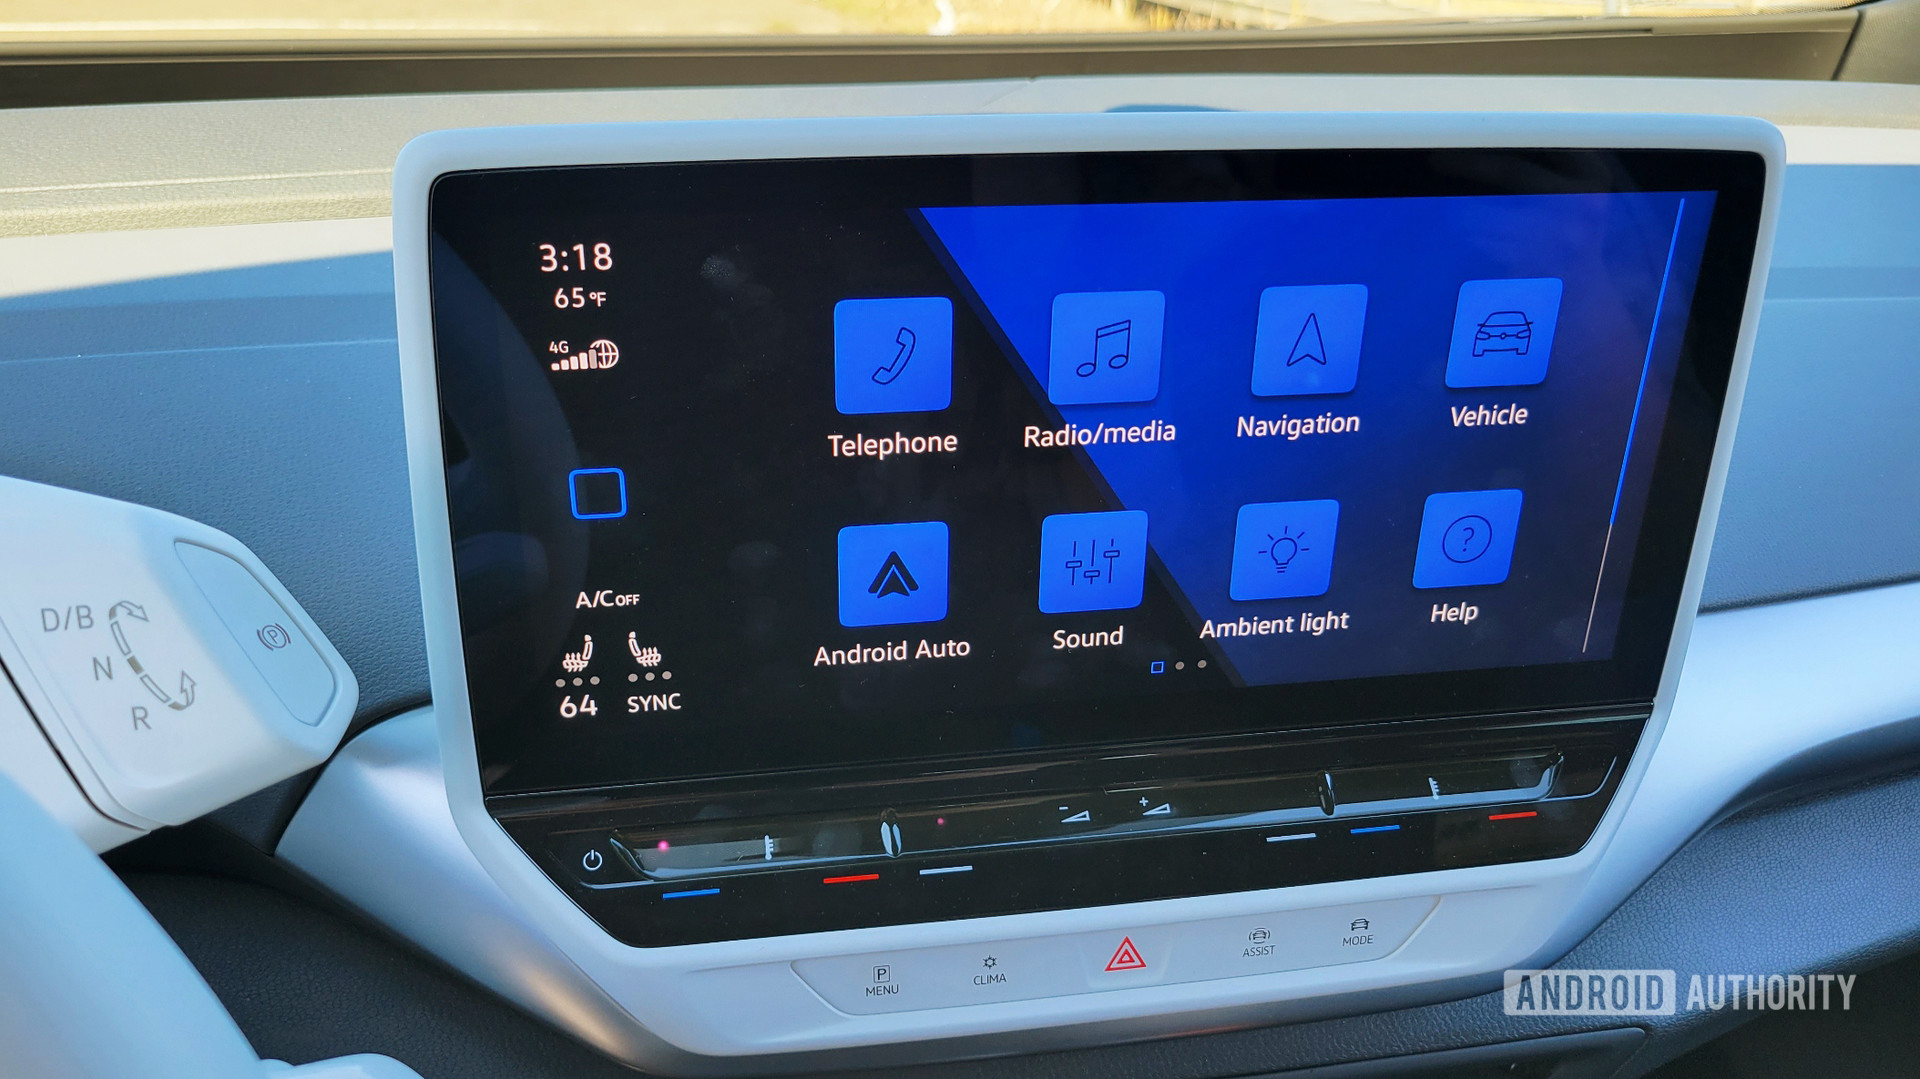 Android Auto in Volkswagen ID.4 App Selection Screen